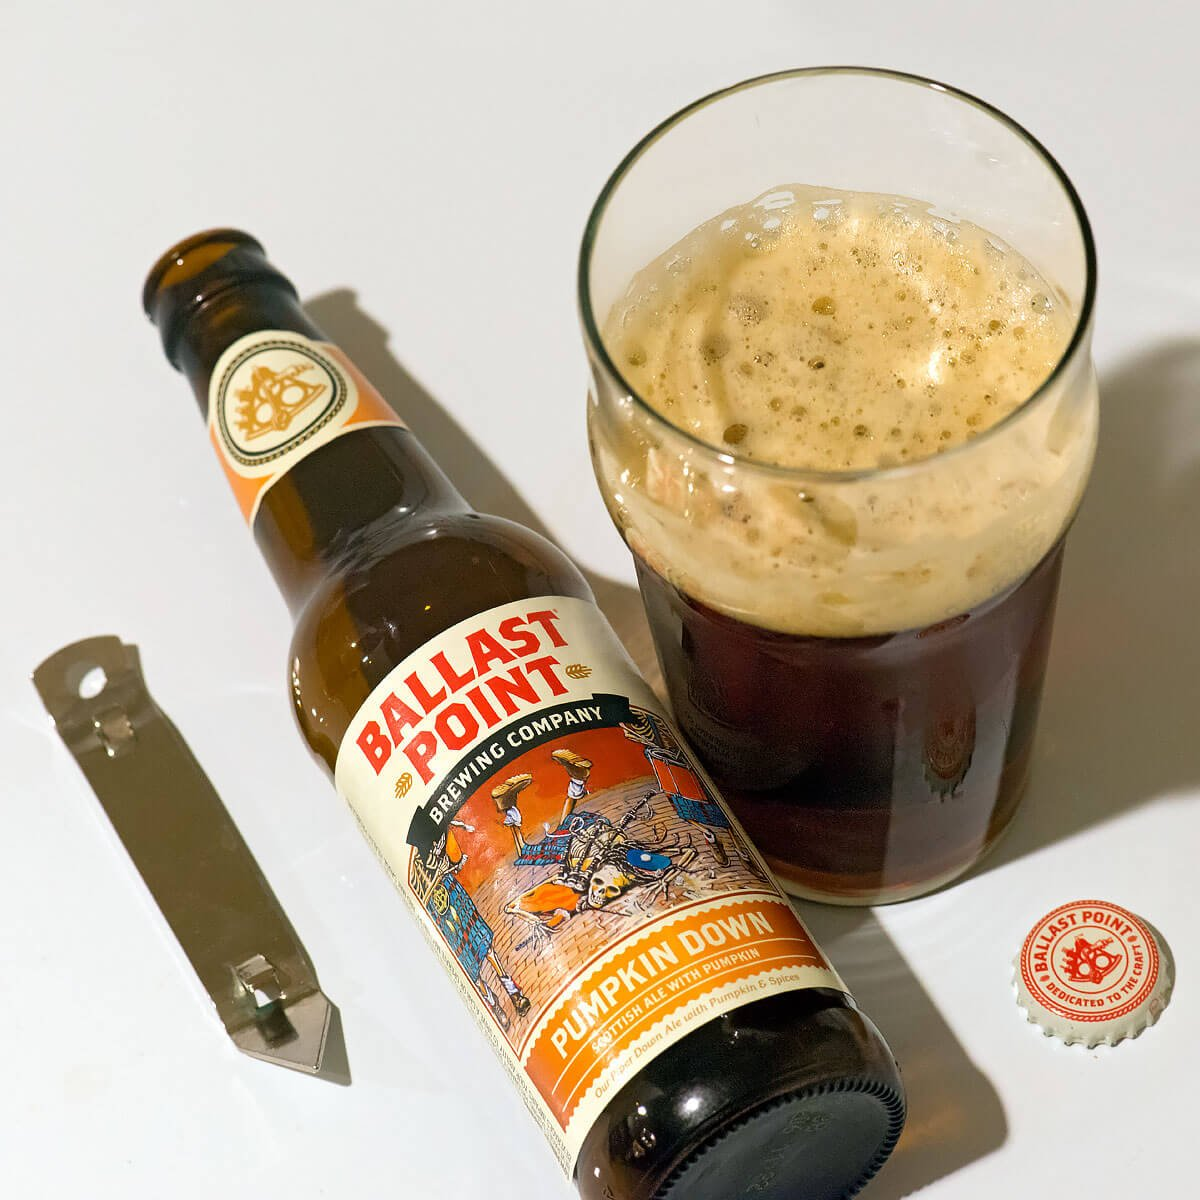 Pumpkin Down, a Scottish Ale by Ballast Point Brewing Company